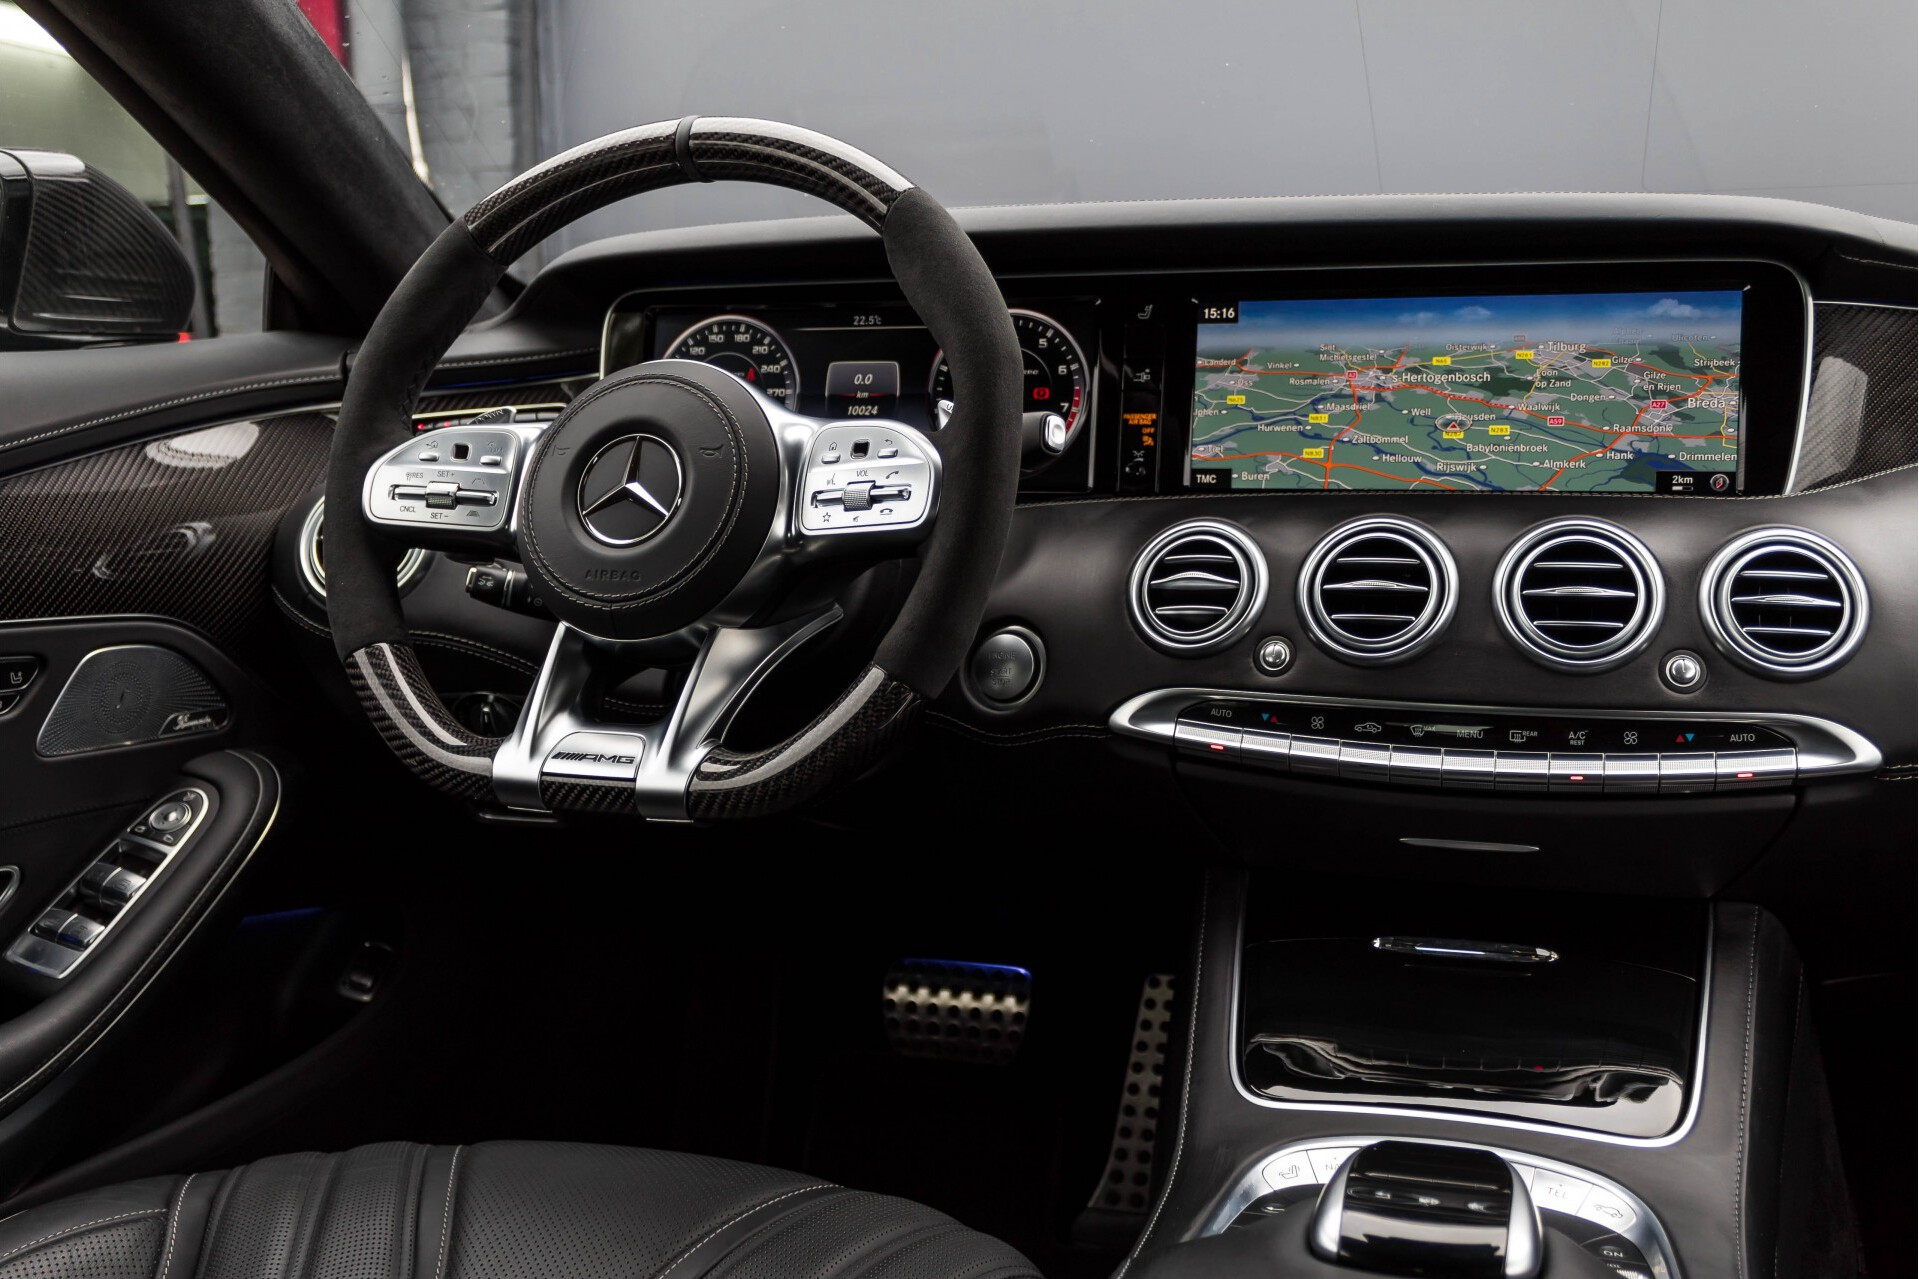 Mercedes-Benz S-Klasse Cabrio 63 AMG 4-M Ceramic/Designo/Carbon/High End/TV Aut7 Foto 8